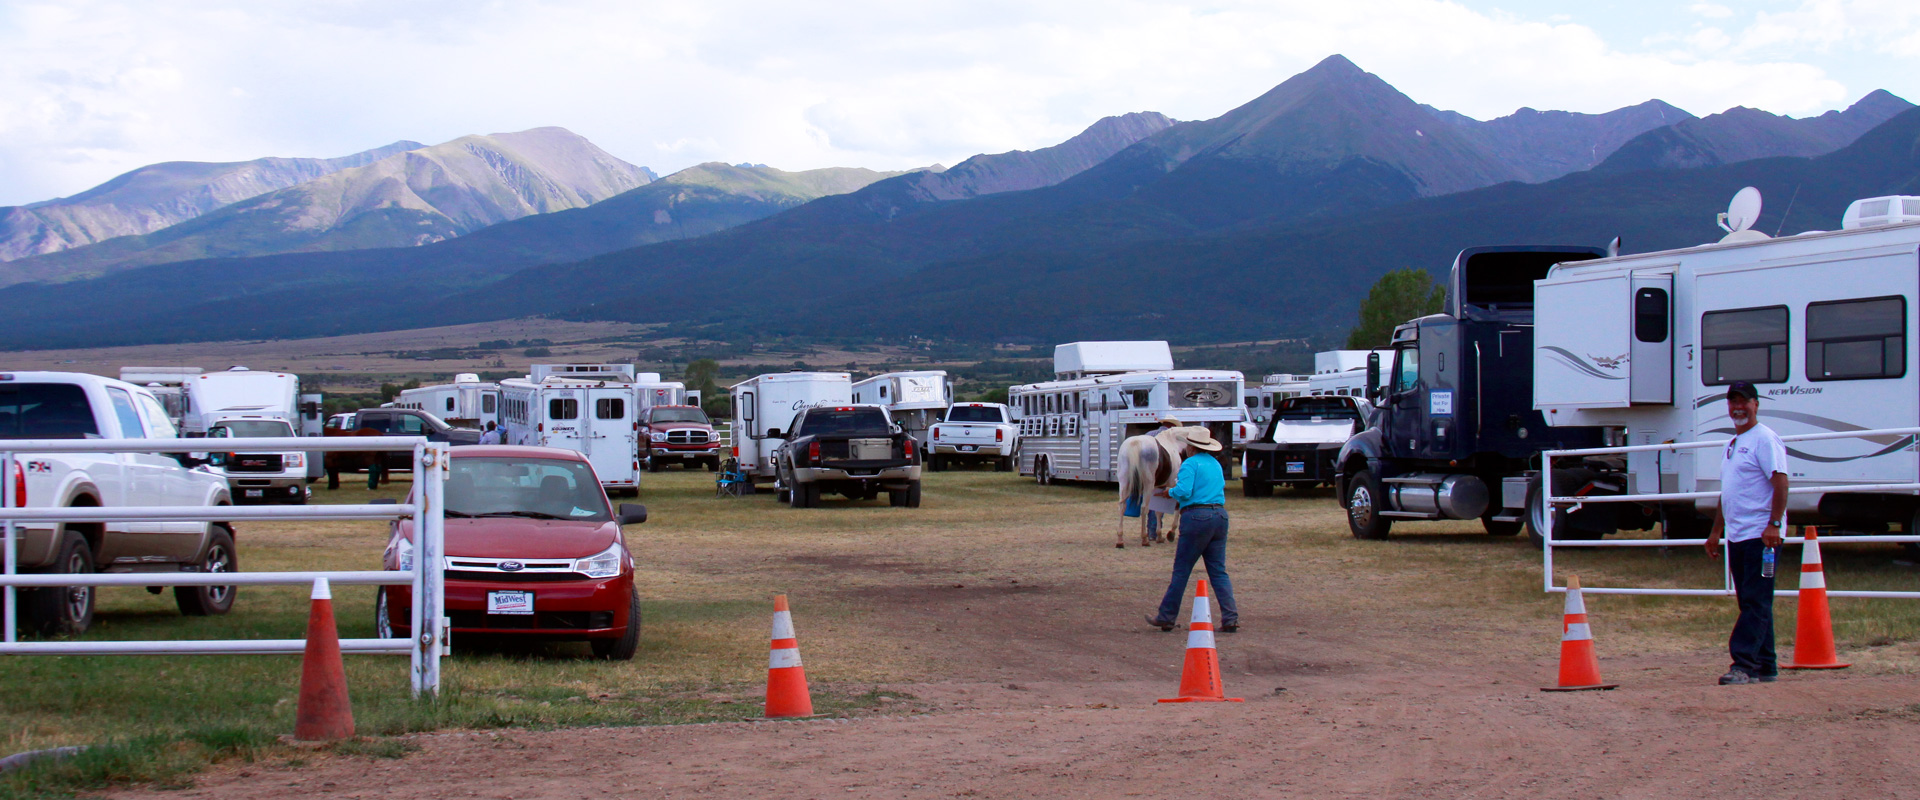 rv hookup rentals Bicycle tours & rentals classes rv parks and public cabins can be found in and around alaska cities and towns most offer internet service and full hook.